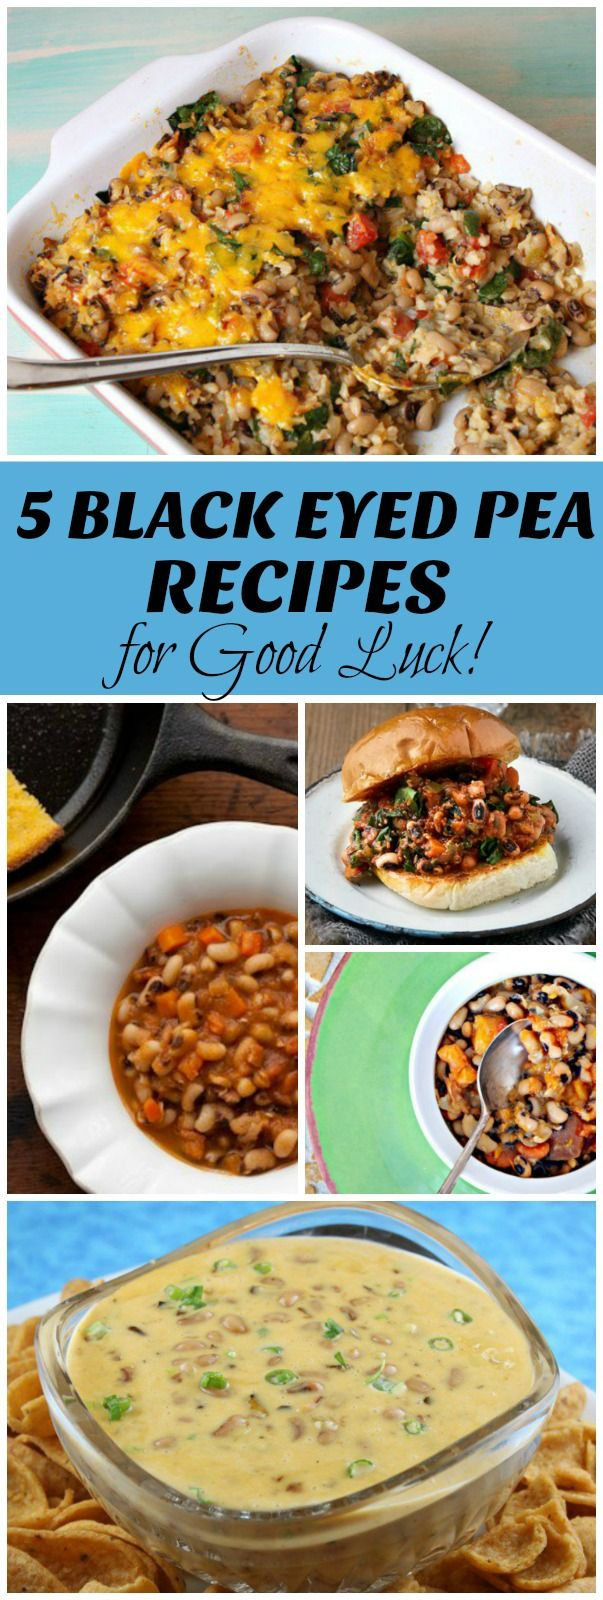 5 Black Eyed Peas recipes for Good Luck in the New Year